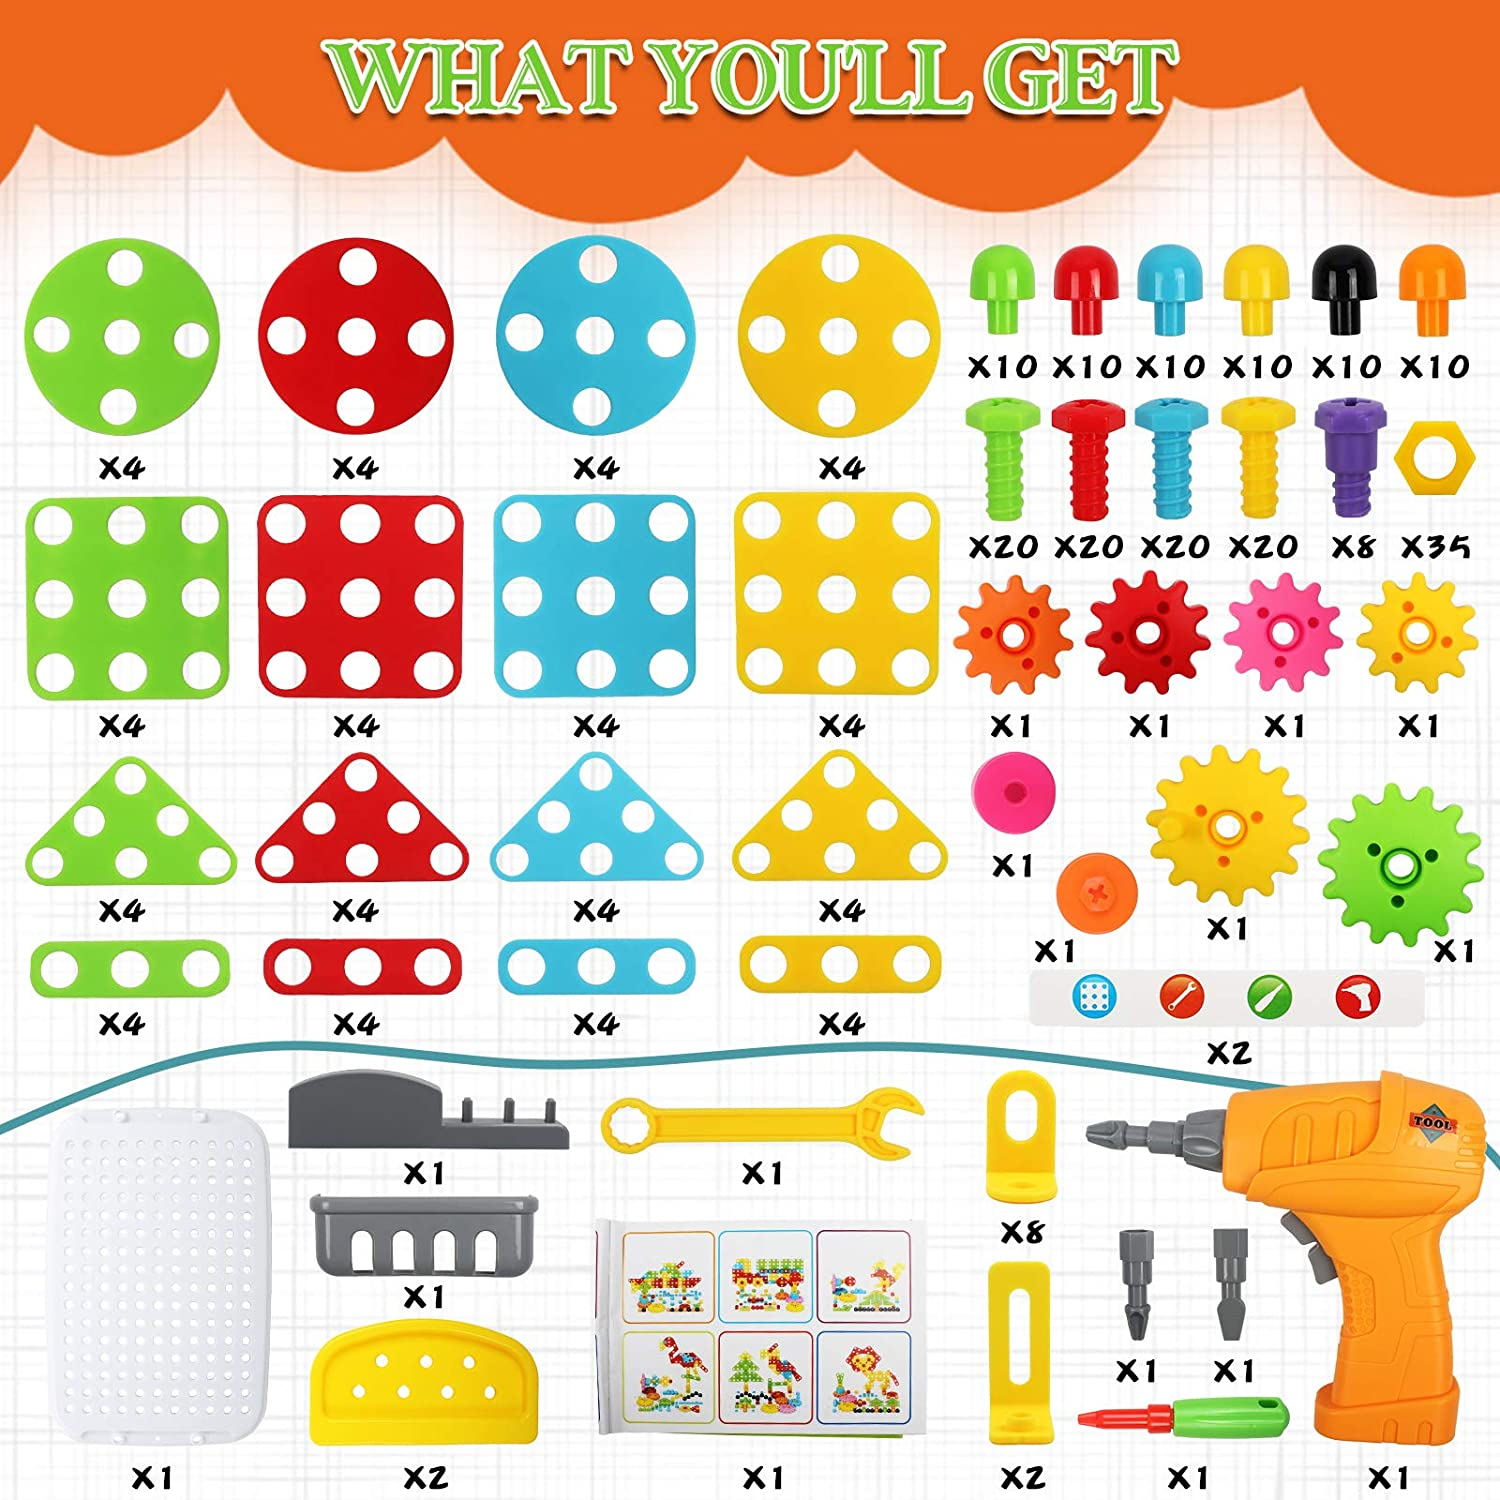 Ansoyi 276PCS Electric Drill Puzzle Toy Set for Boys /& Girls,STEM Engineering Education Learning Building Block Set with Pegboard Toy Drill Button Screw Driver Tool Kits for Kids Ages 3-10 Years Old